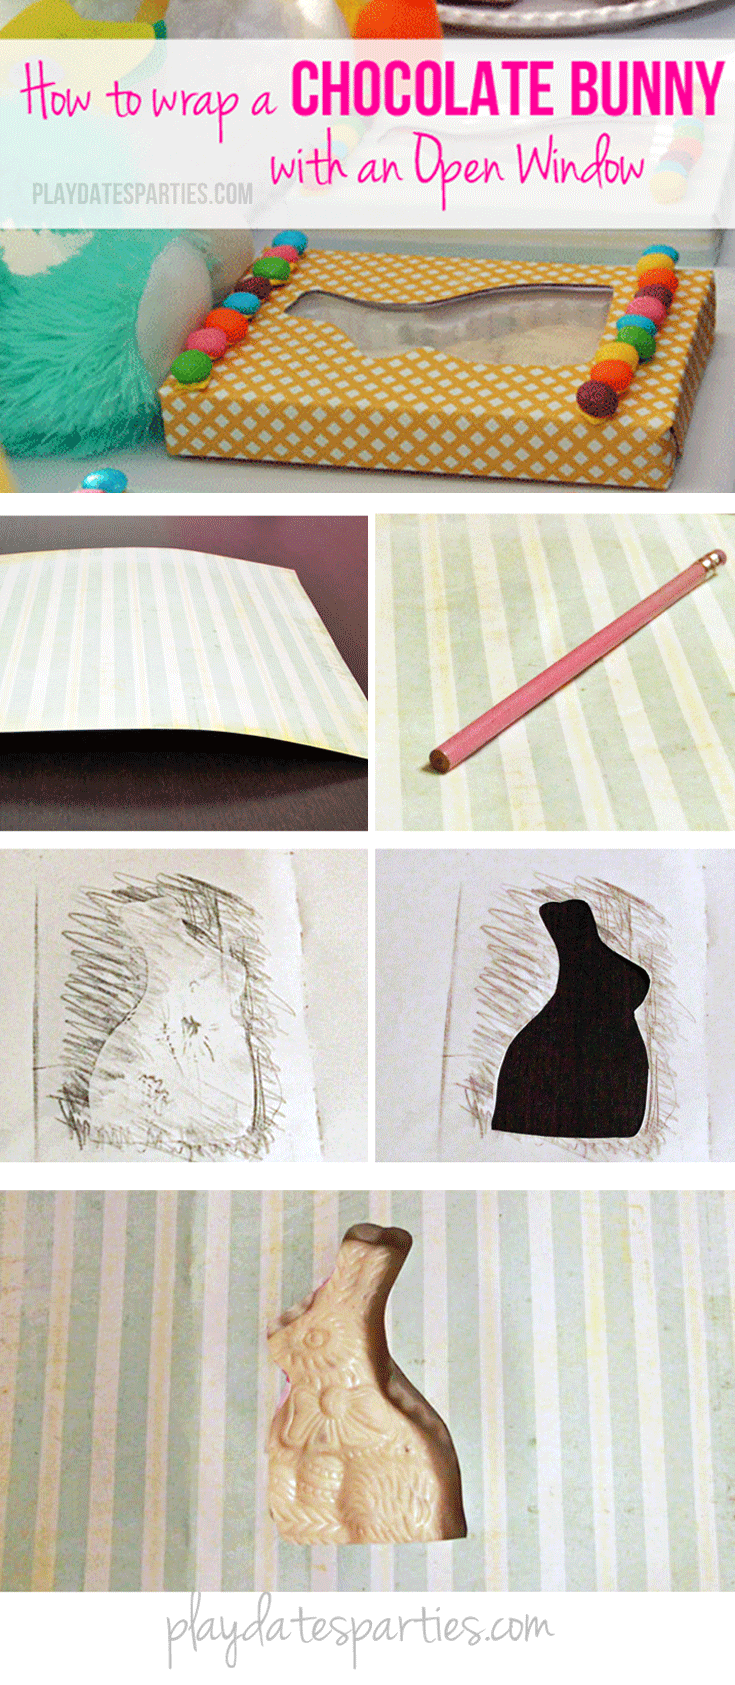 Don't get stuck with the ugly box around your chocolate bunny. Follow these steps to create your own bunny wrapper with your favorite paper.